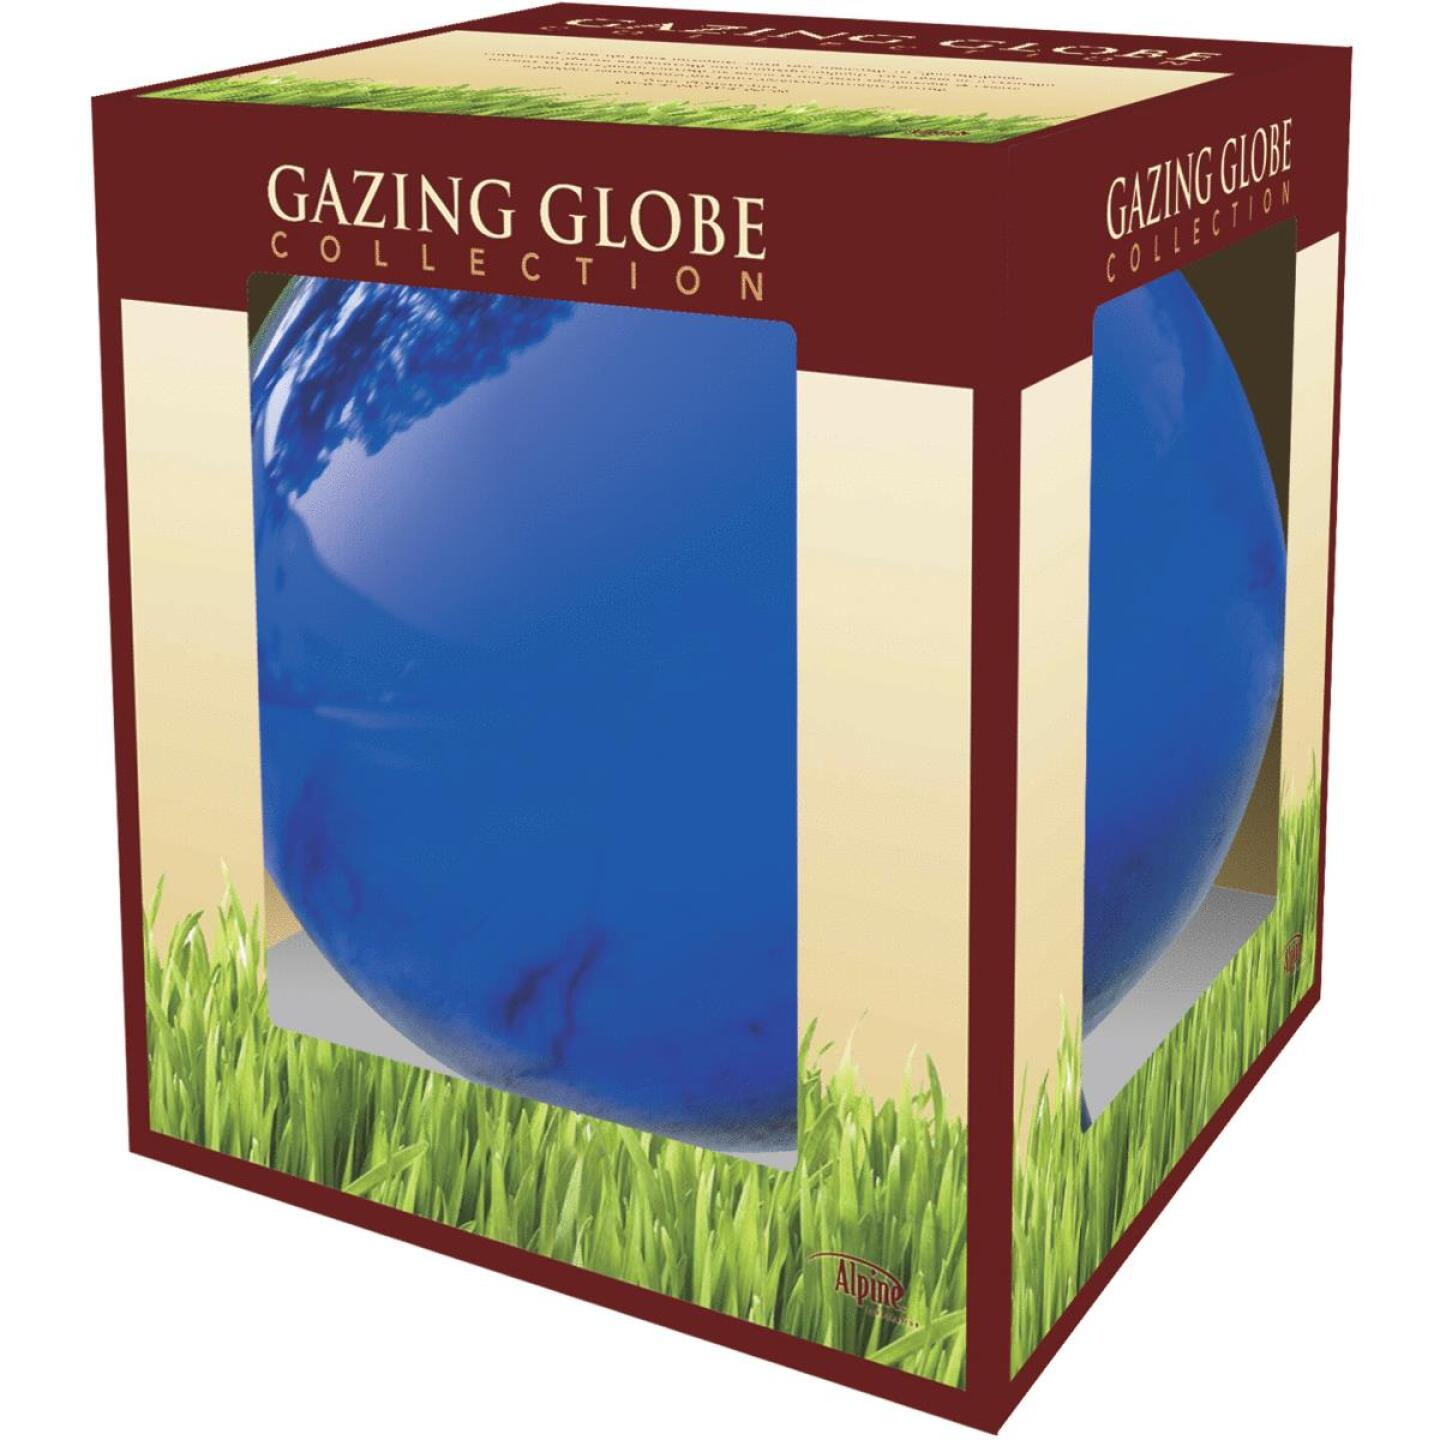 Alpine 10 In. Dia. Electric Blue Glass Gazing Globe Lawn Ornament Image 2